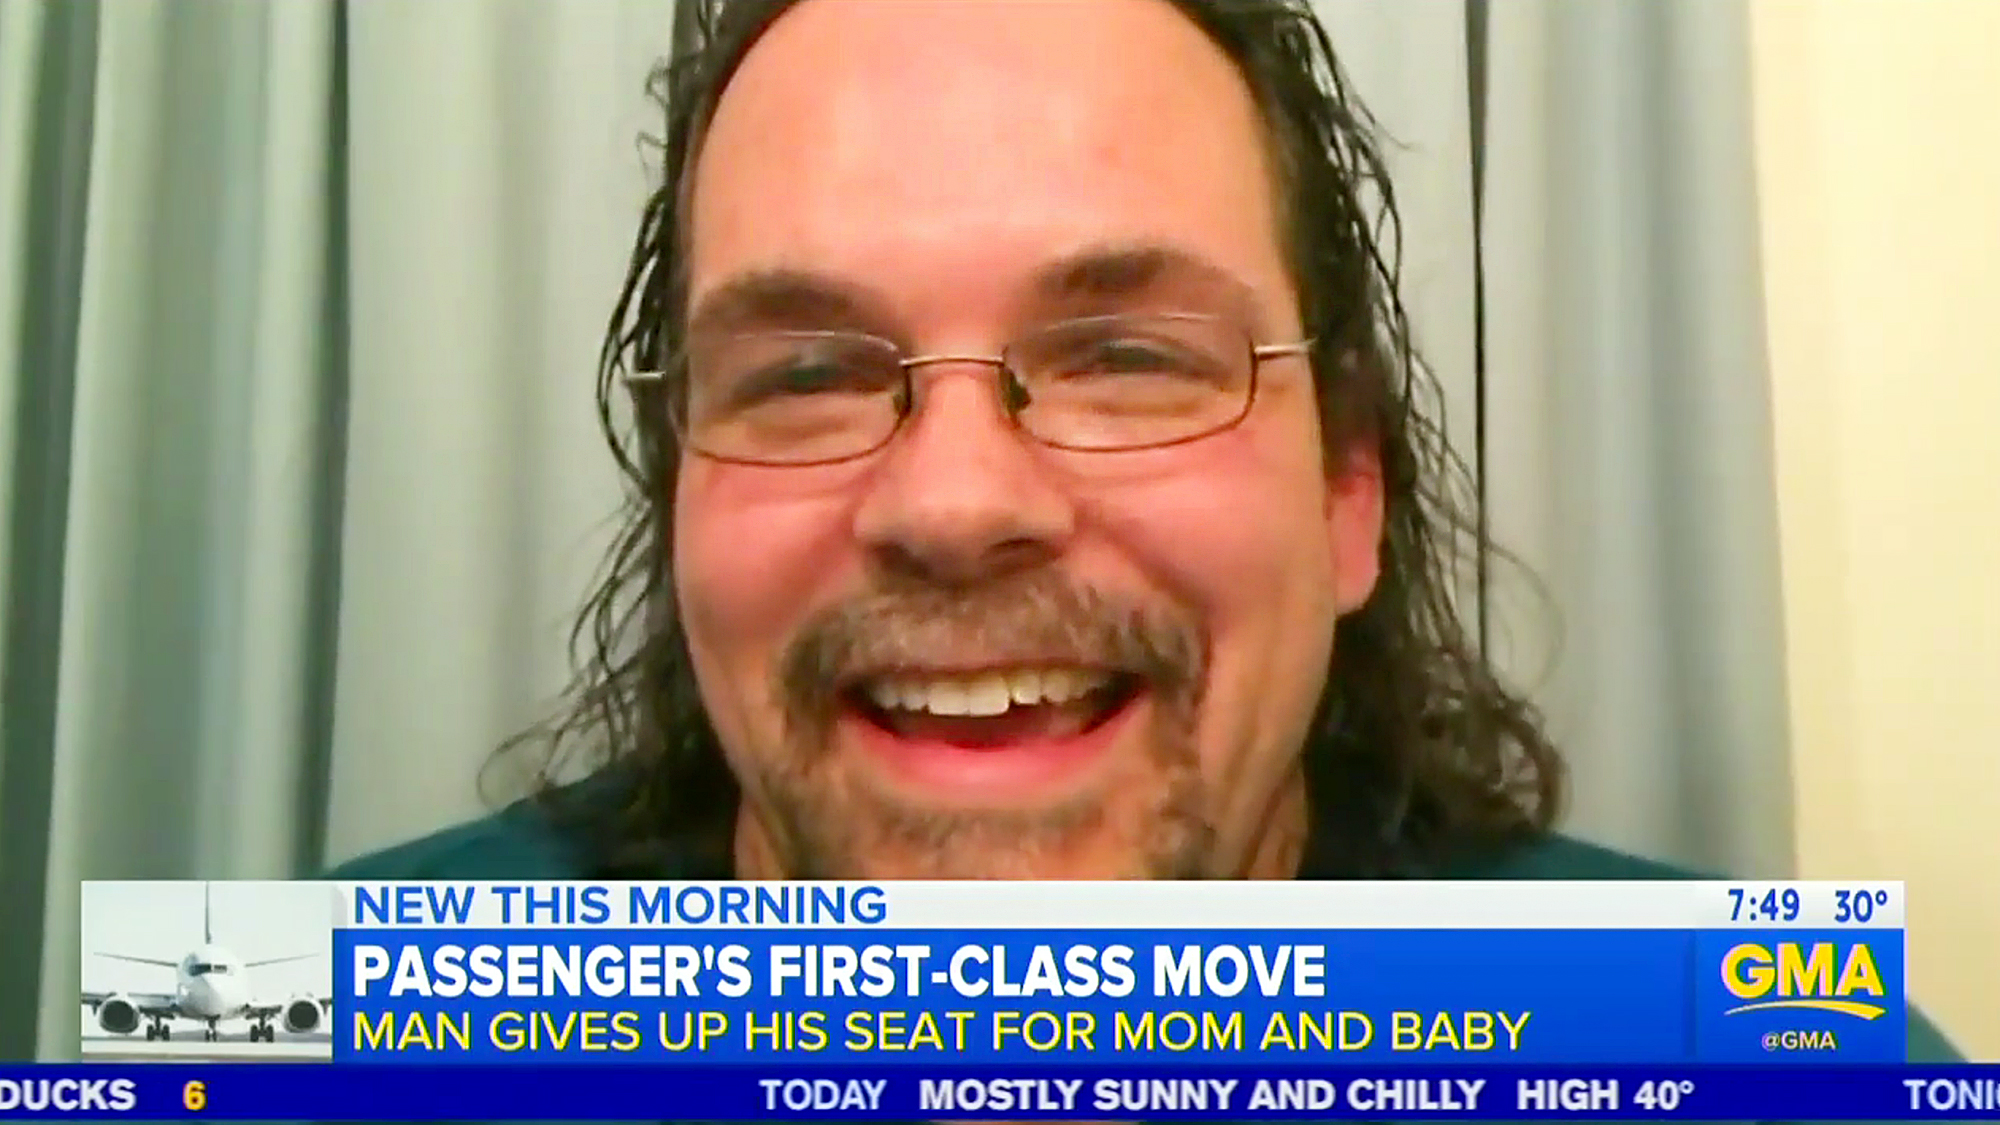 Man Gives Up First Class Seat For Mom And Baby